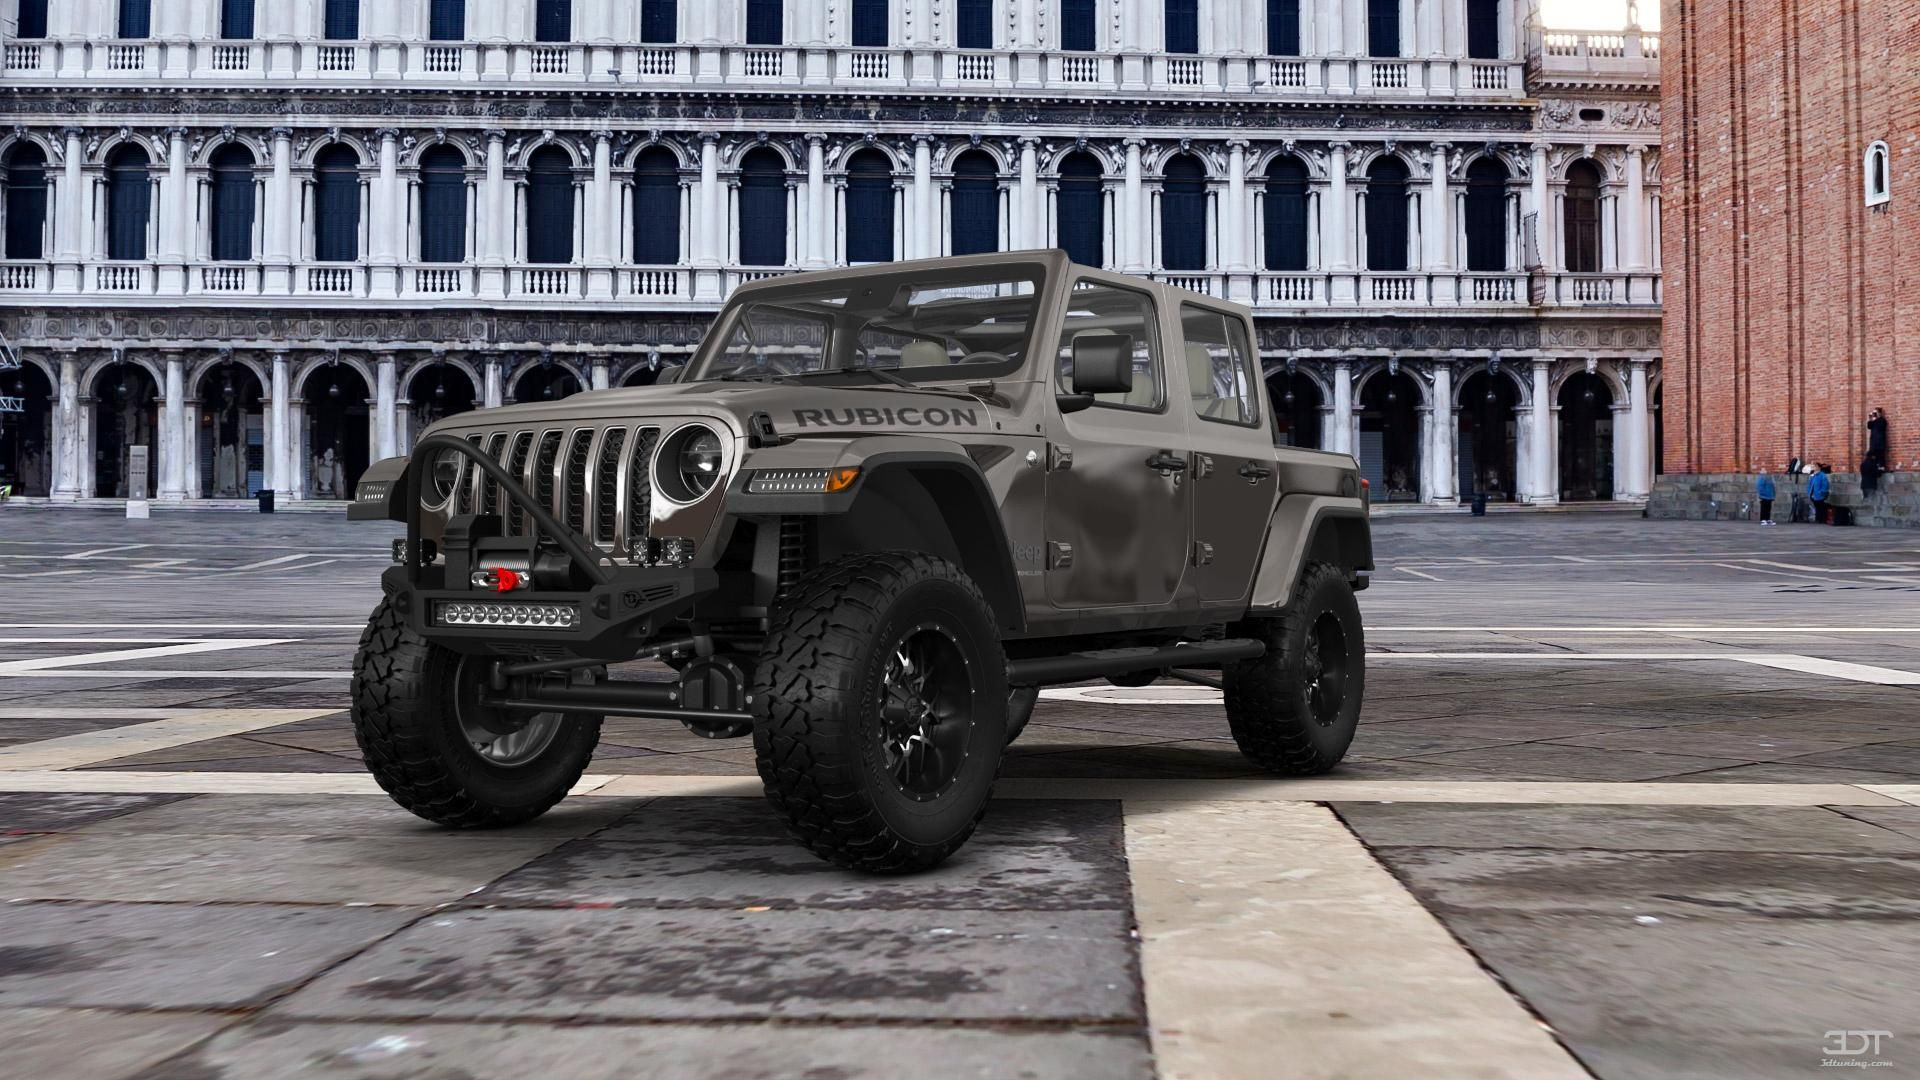 Checkout my tuning Jeep WranglerJL 2018 at 3DTuning